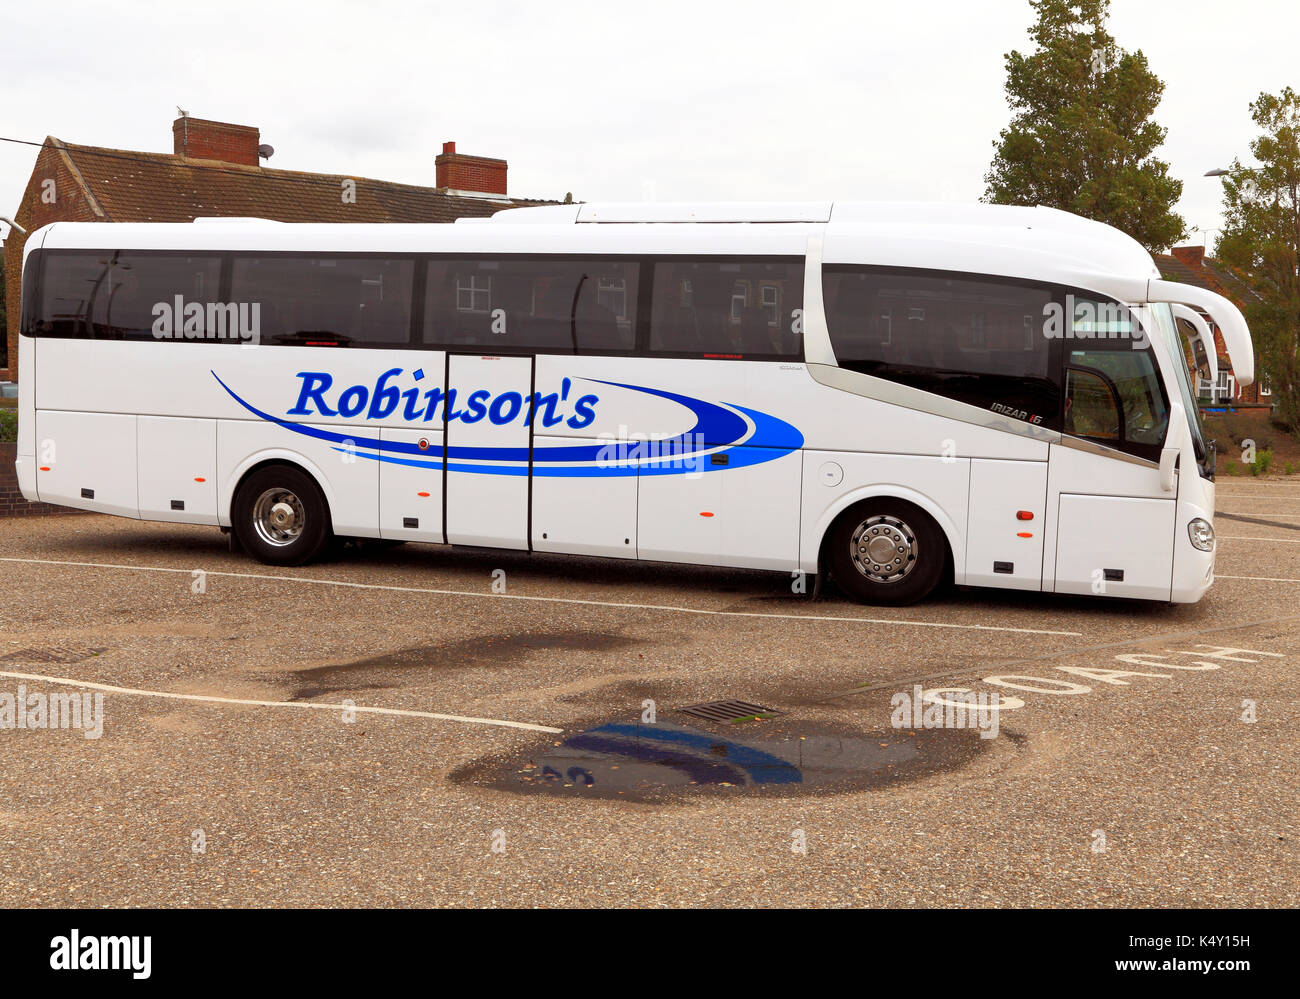 Robinson's coaches, coach, day trips, trip, excursion, excursions, travel company, companies, holiday, holidays, transport, England, UK - Stock Image